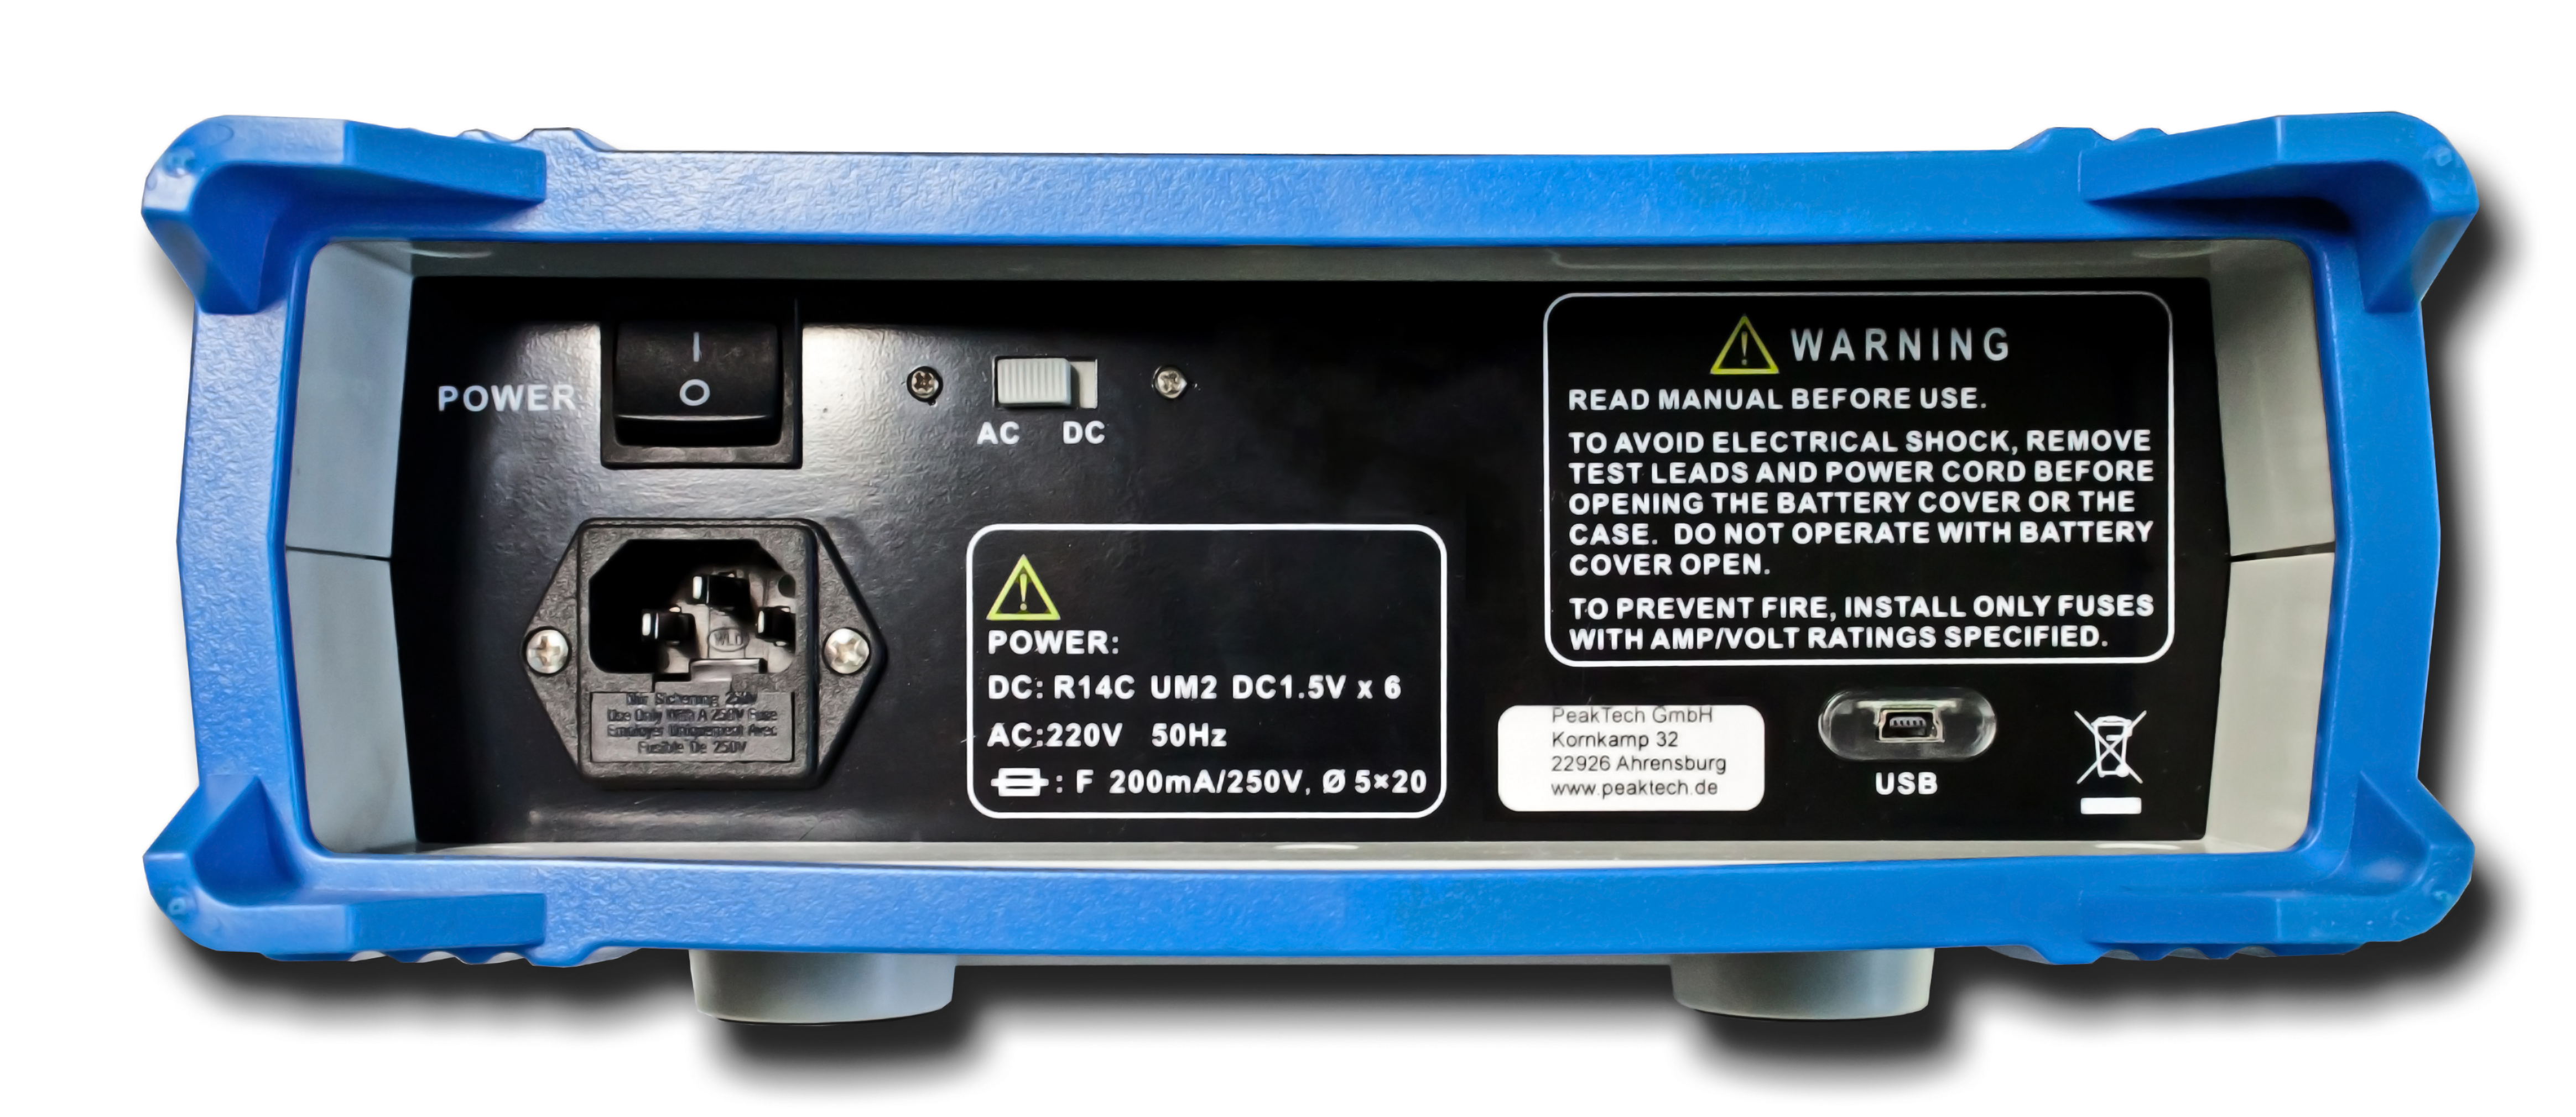 «PeakTech® P 4090» Graphical bench multimeter, 22.000 counts with USB